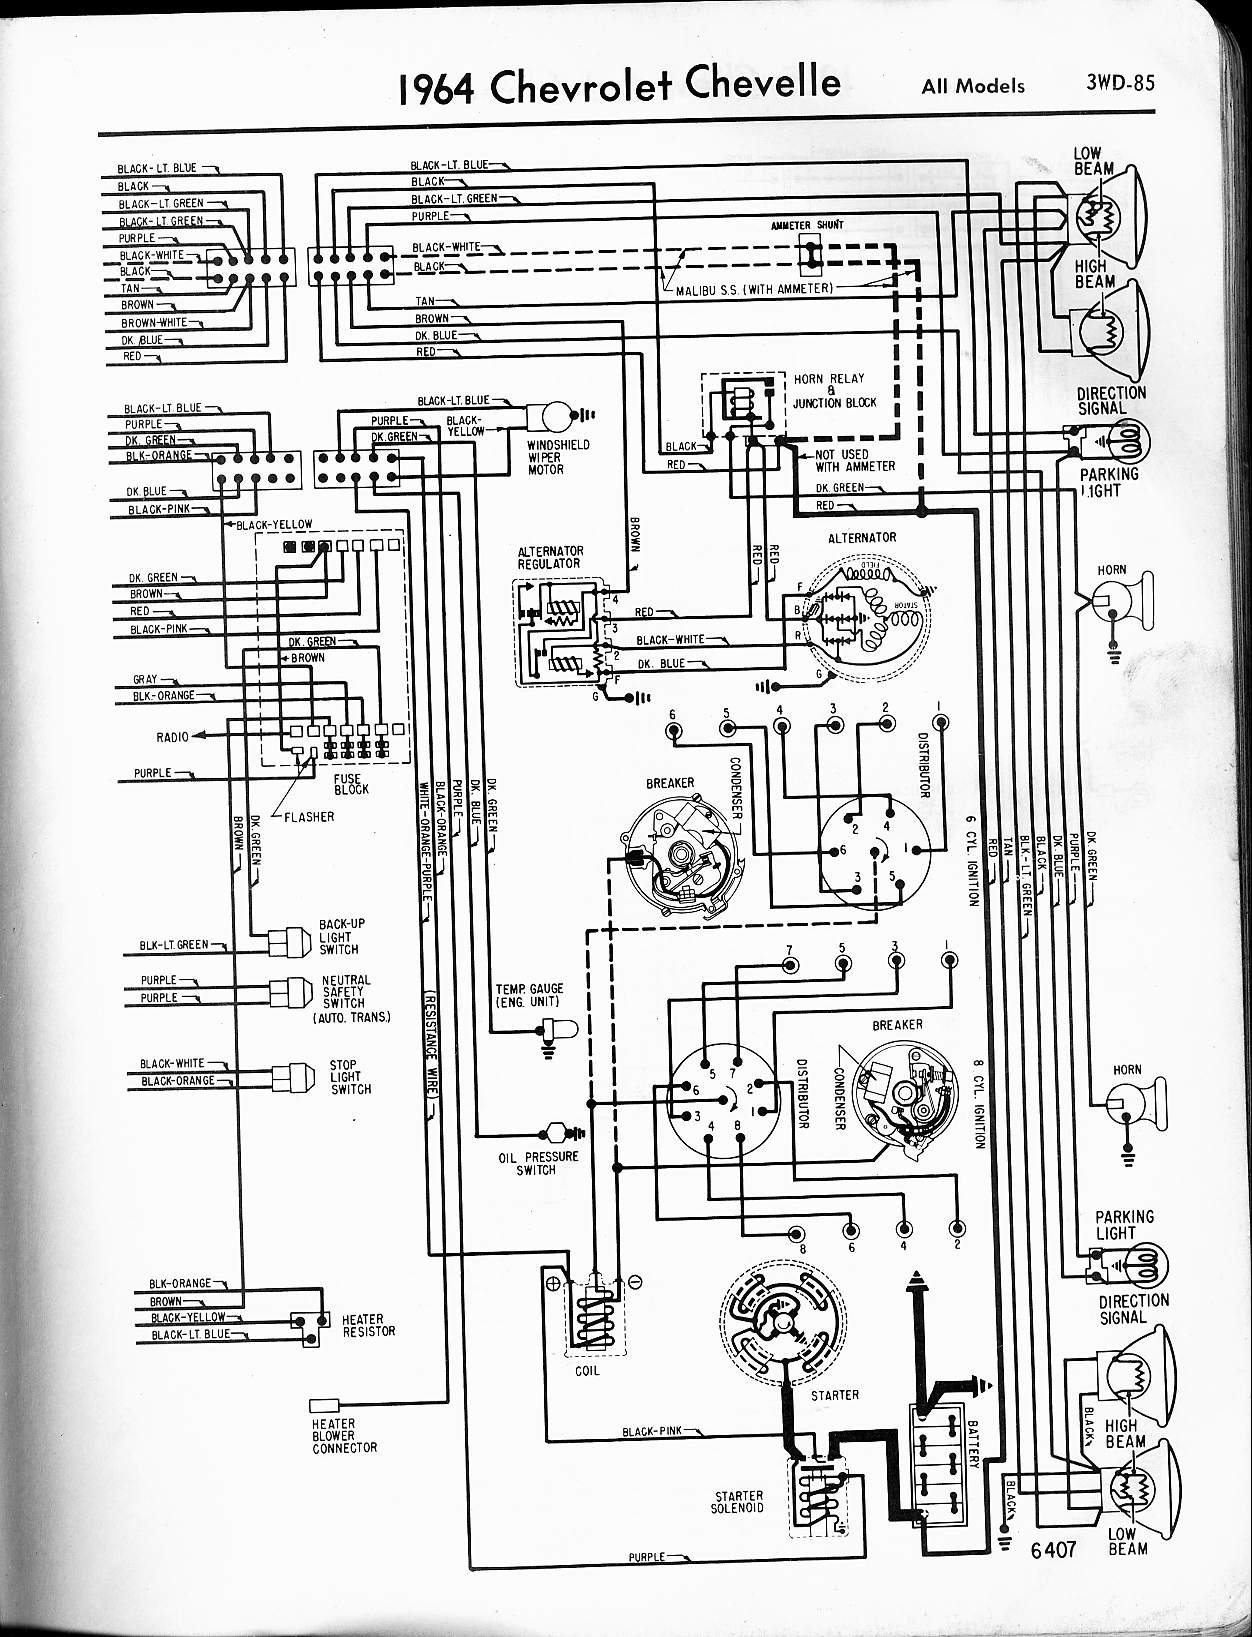 1965 Olds 442 Wiring Diagram Trusted Diagrams 1969 Oldsmobile Toronado 1986 Schematics U2022 Rh Seniorlivinguniversity Co 1968